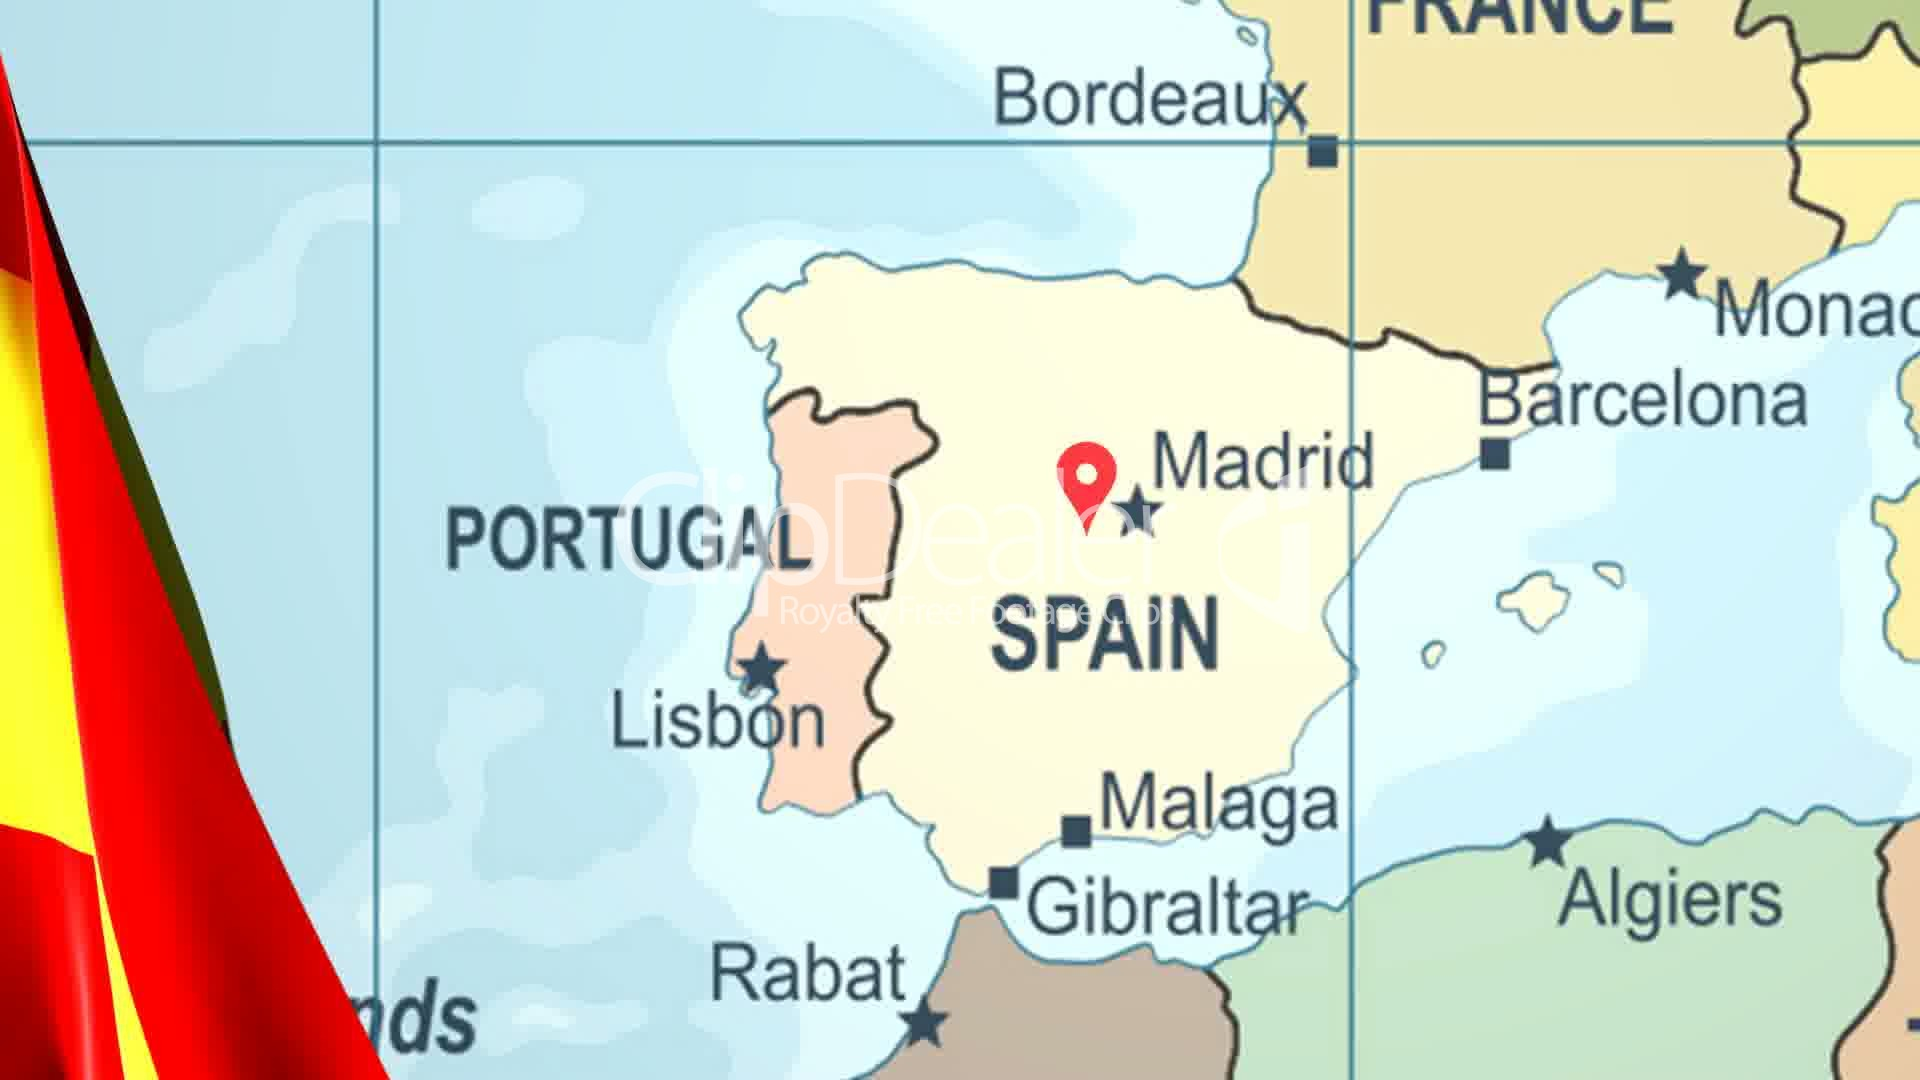 Animated Flag of Spain With a Pin on a Worldmap: Royalty-free video ...